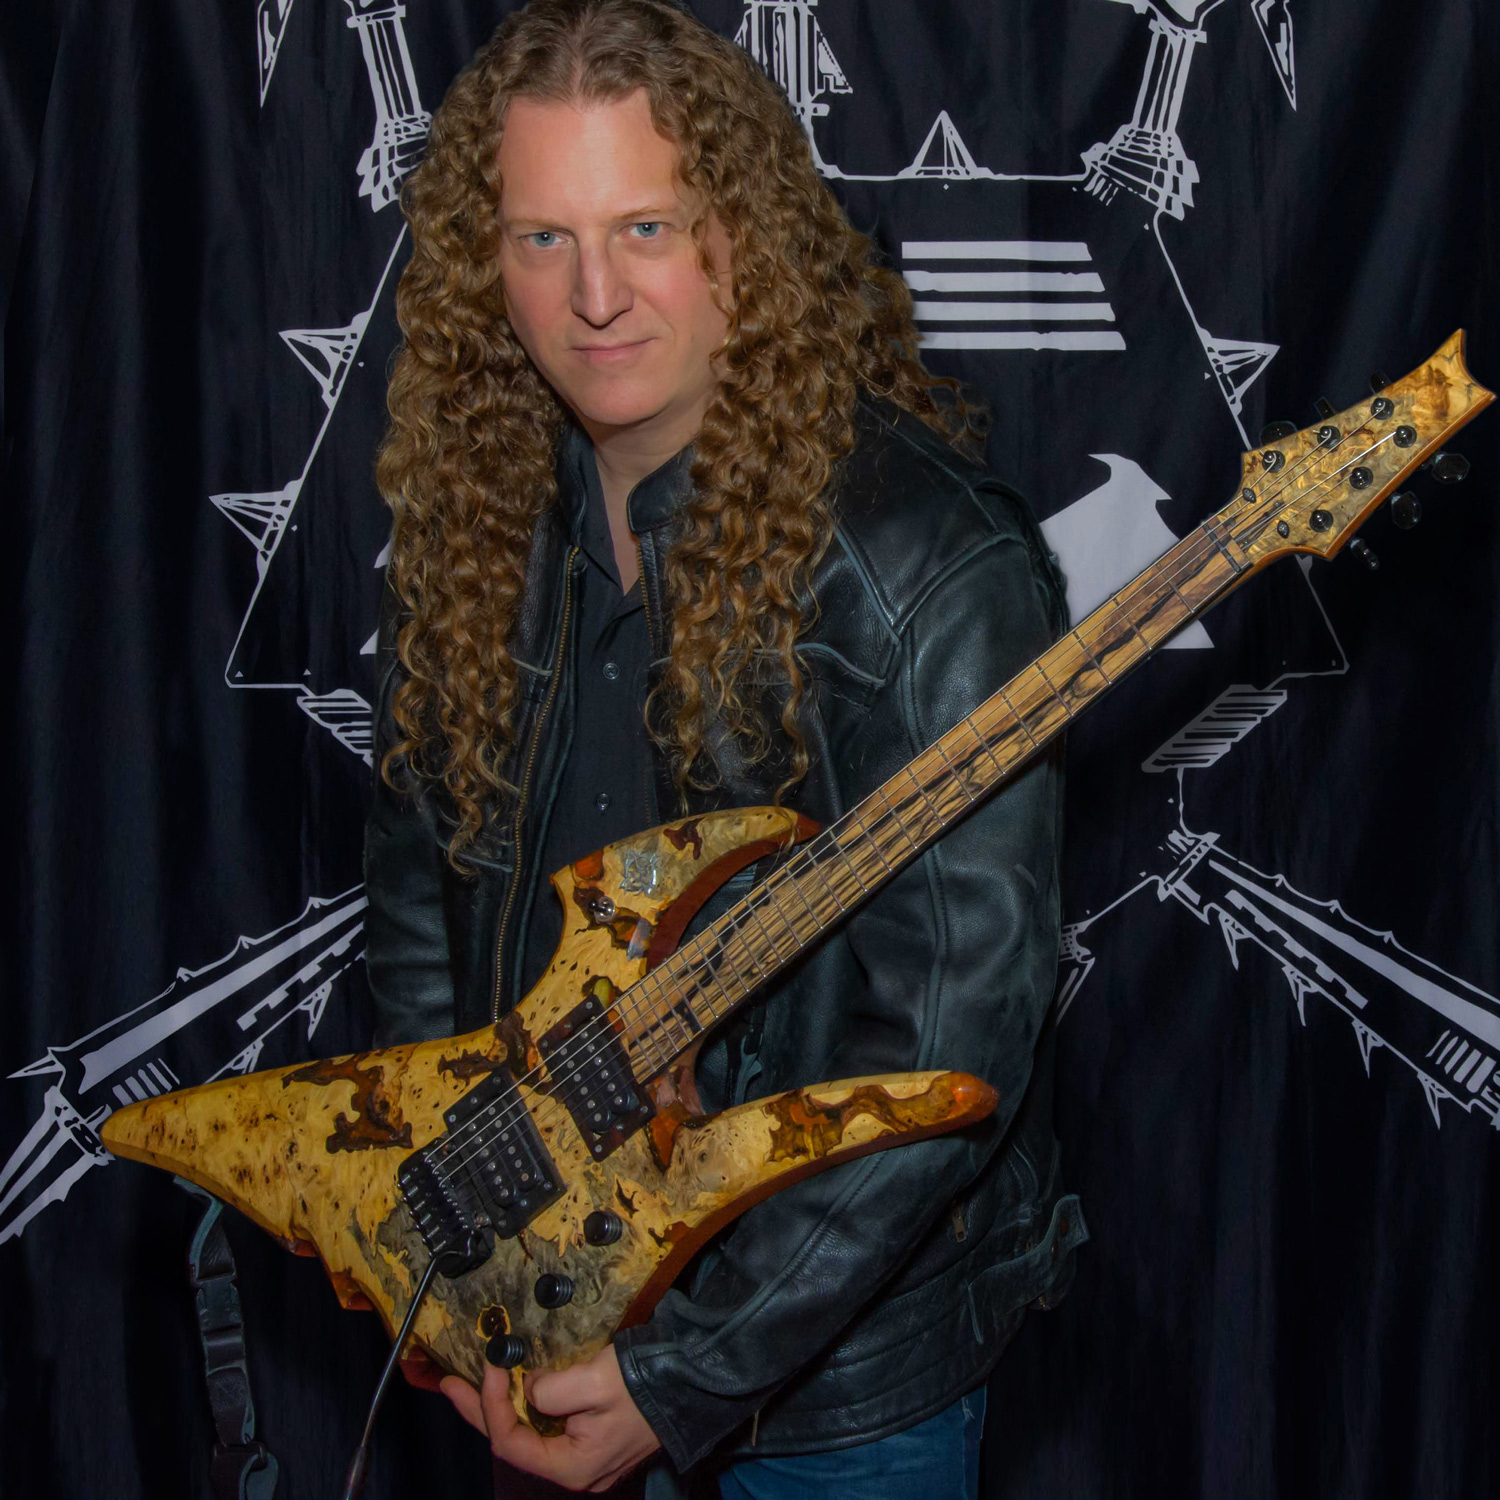 Dan Mongrain of Voivod plays DiMarzio